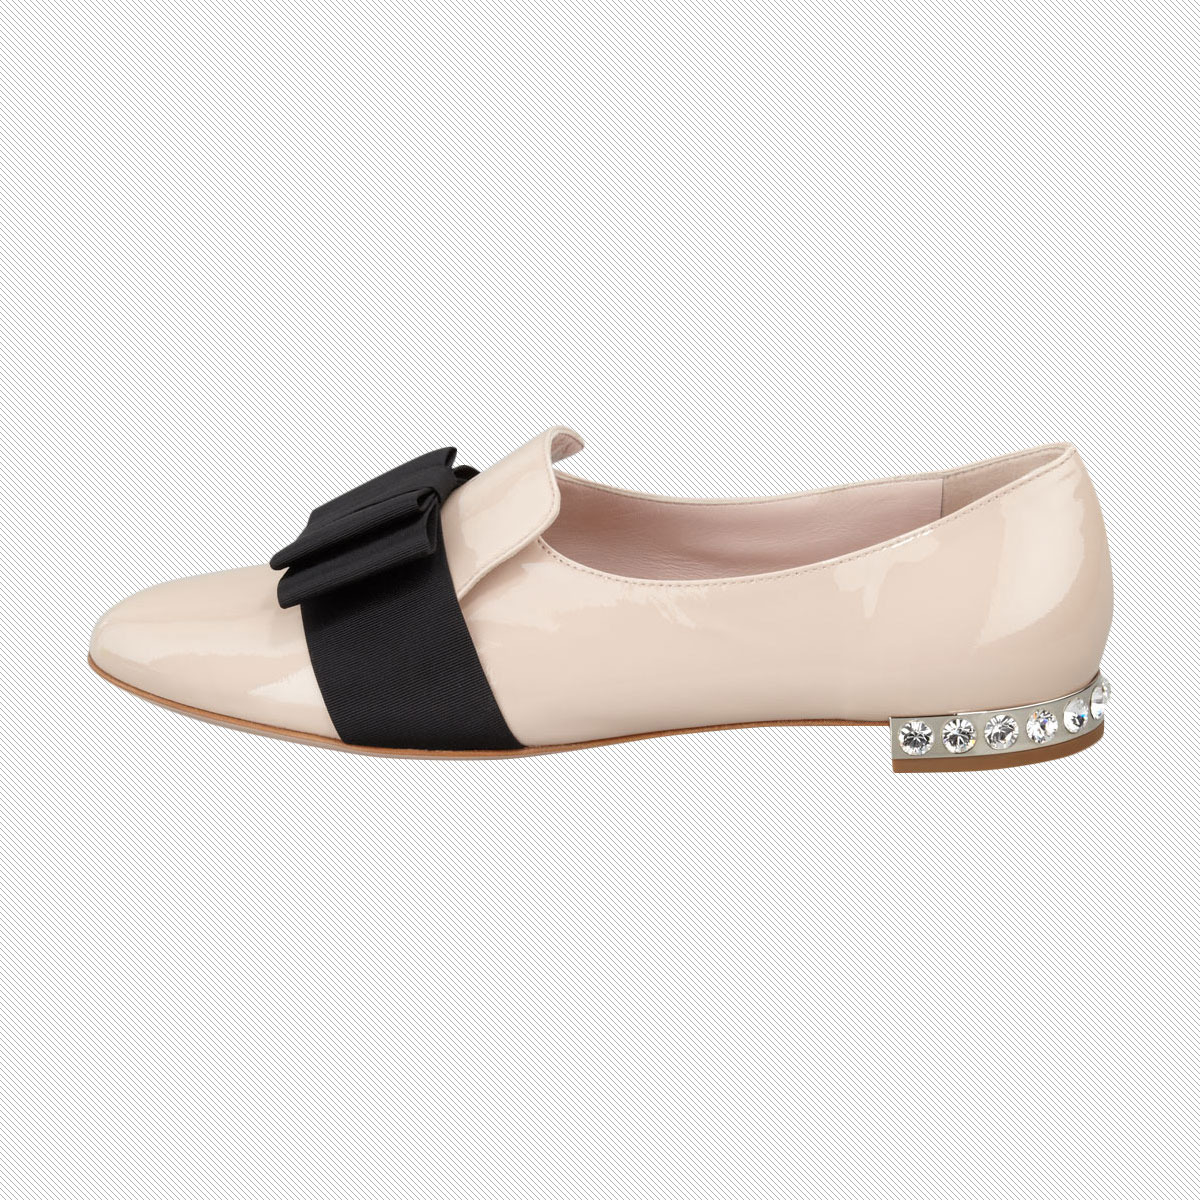 Miu Miu Patent Leather Grosgrain Bow Loafer - Festive And ...